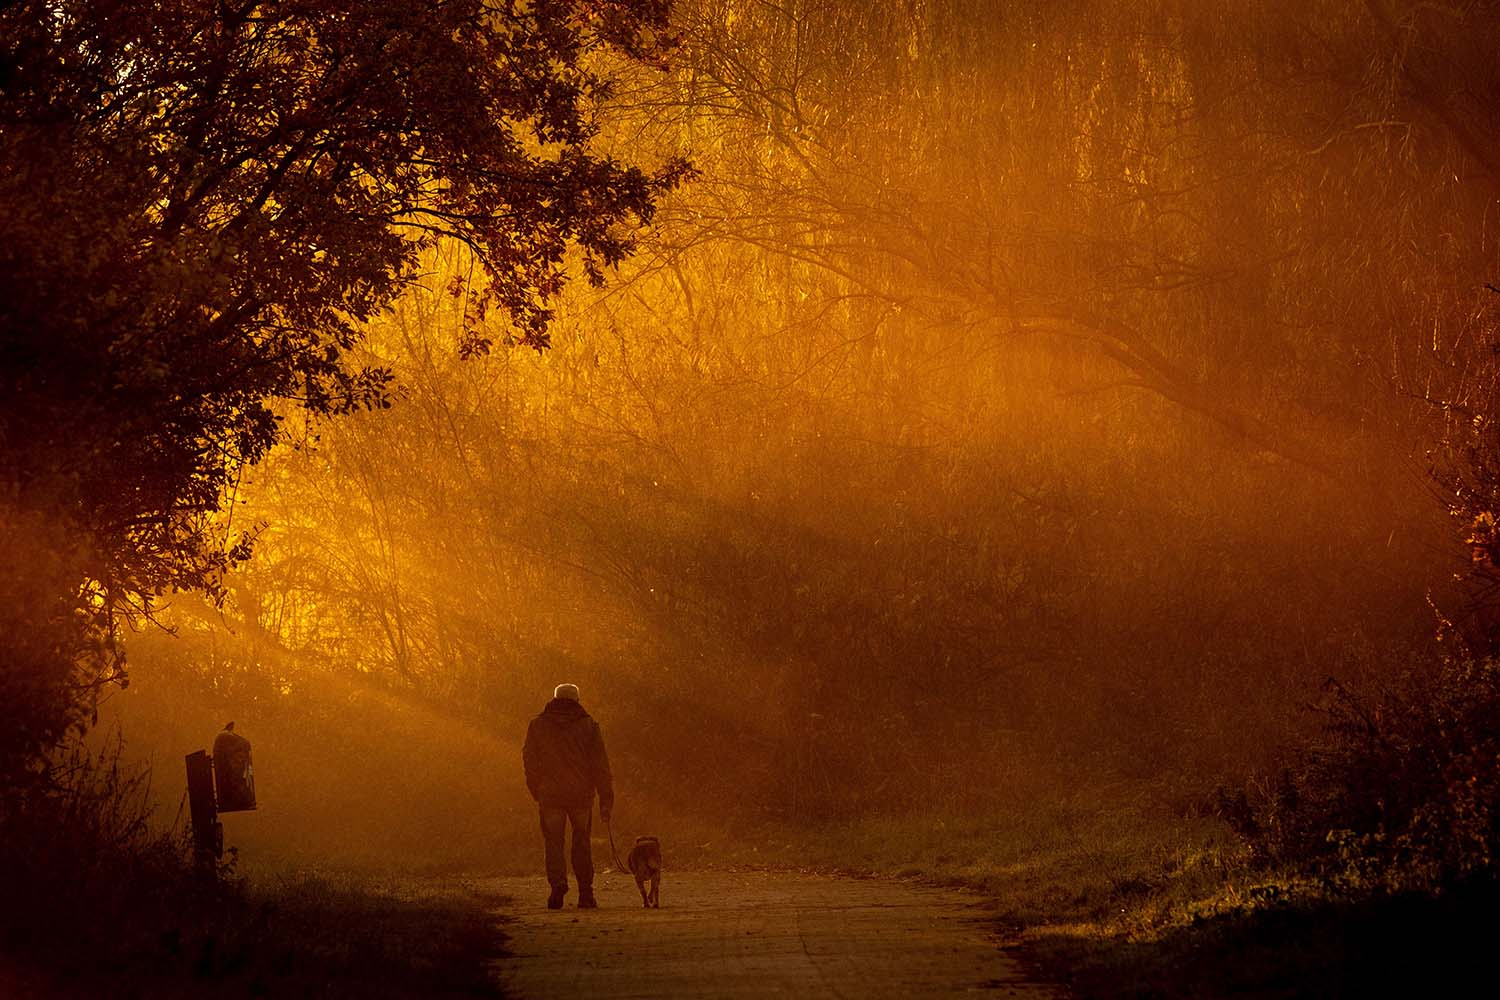 A man walks his dog as sun rises in Hanover, northern Germany, on Nov. 14. PETER STEFFEN/dpa/AFP via Getty Images